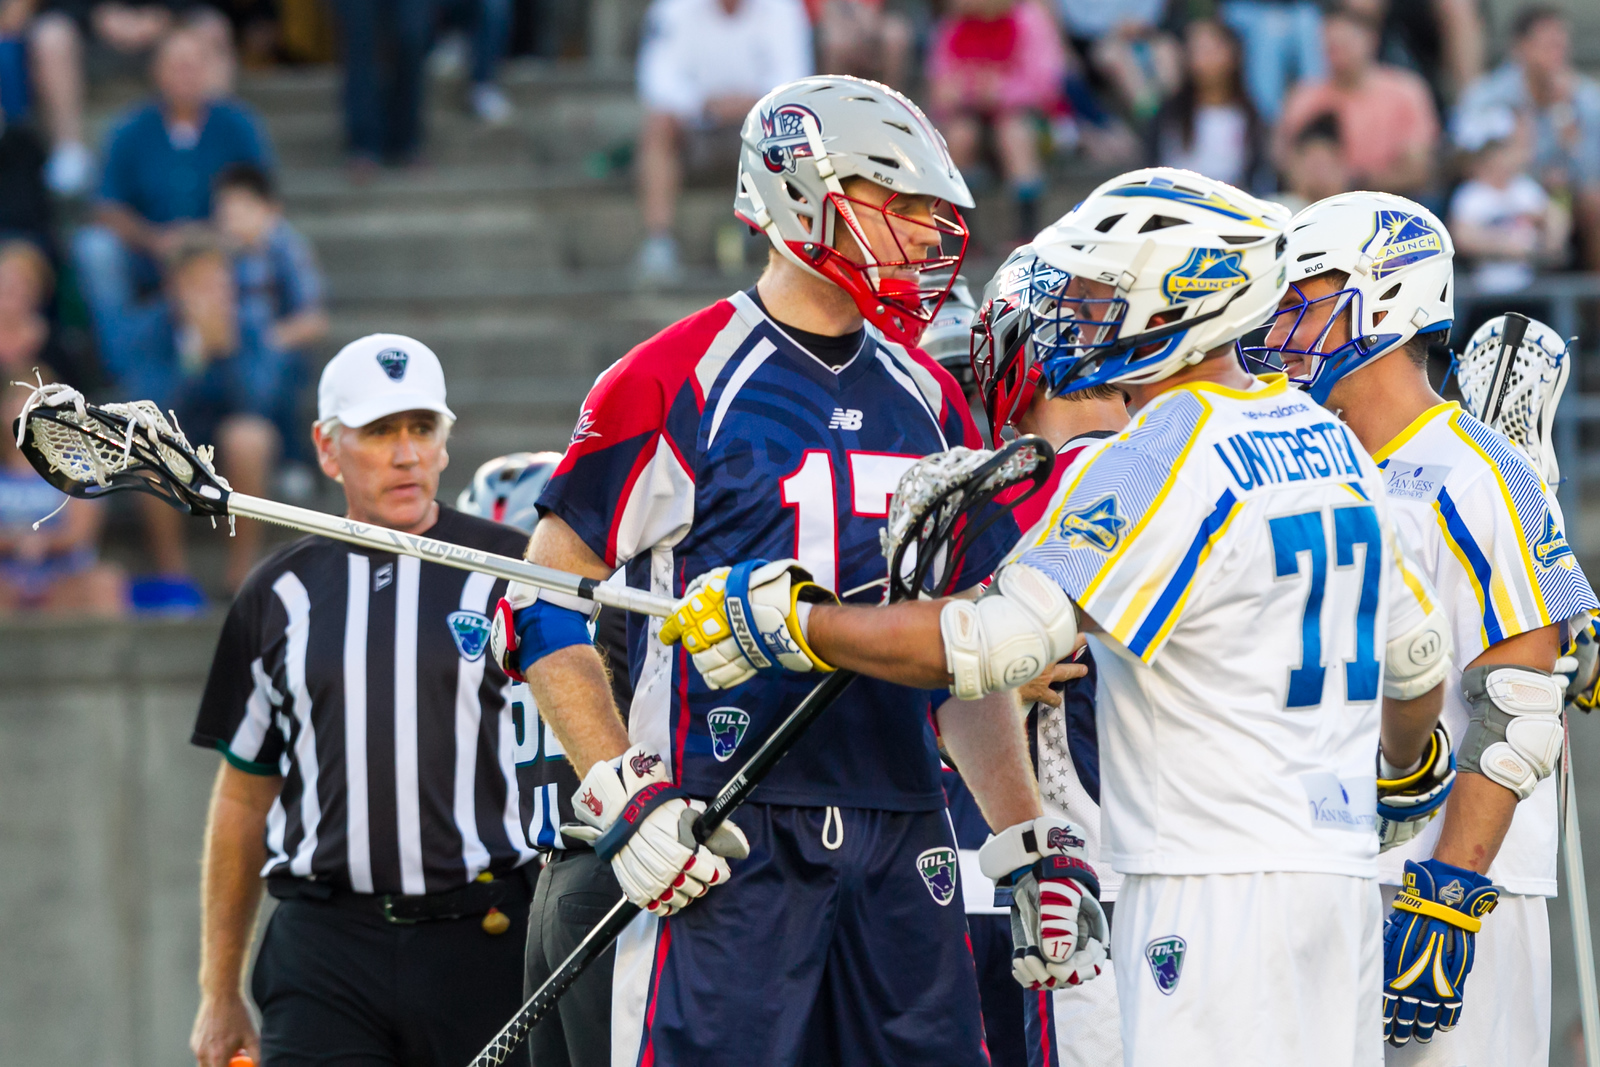 MLL: Florida Launch @ Boston Cannons